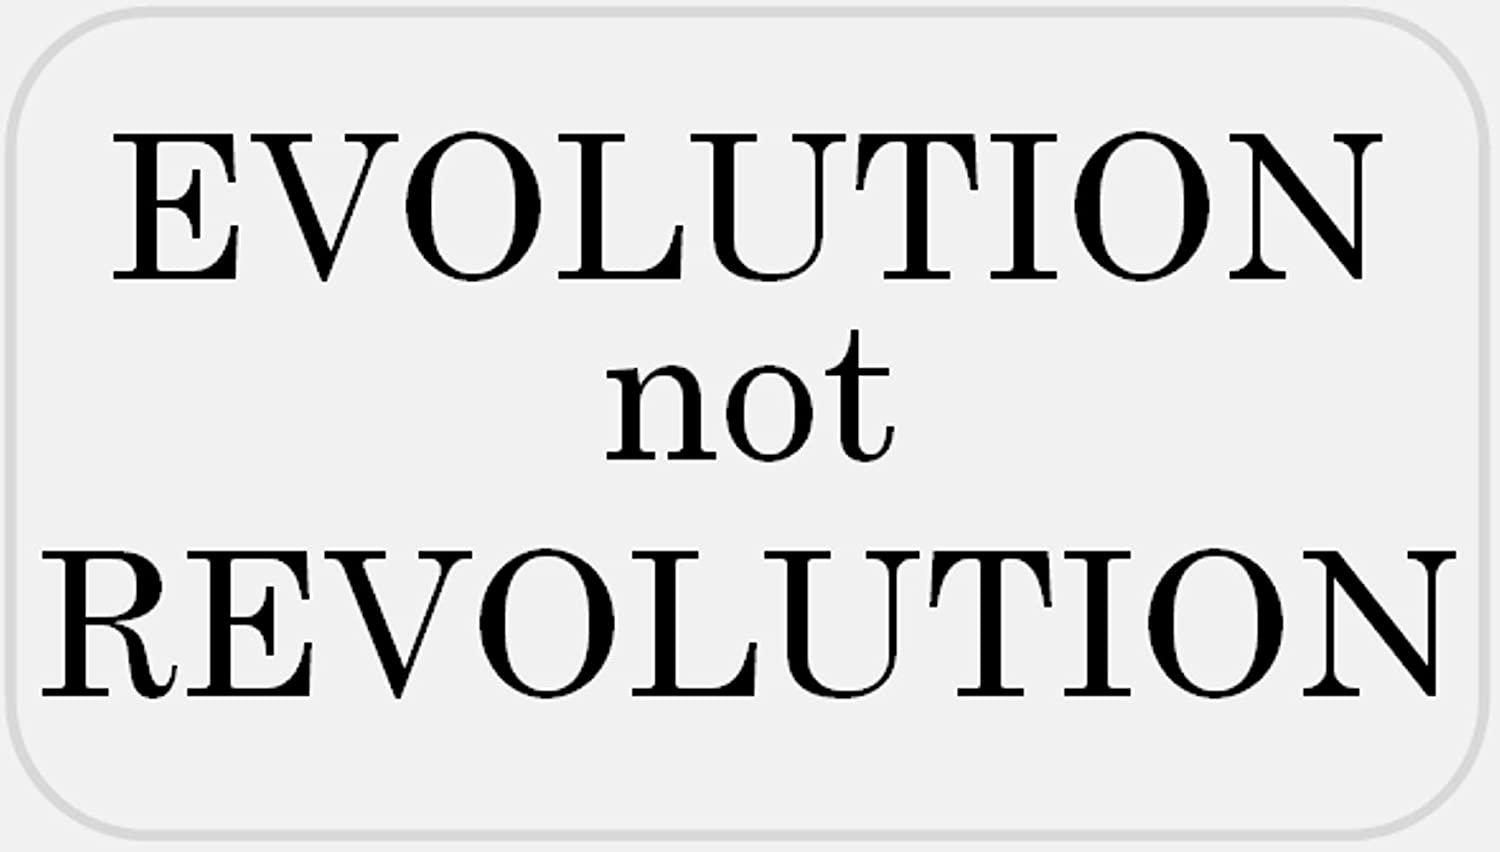 Evolution Not Revolution - 25 Stickers Pack 2.25 x 1.25 inches - Political Slogan